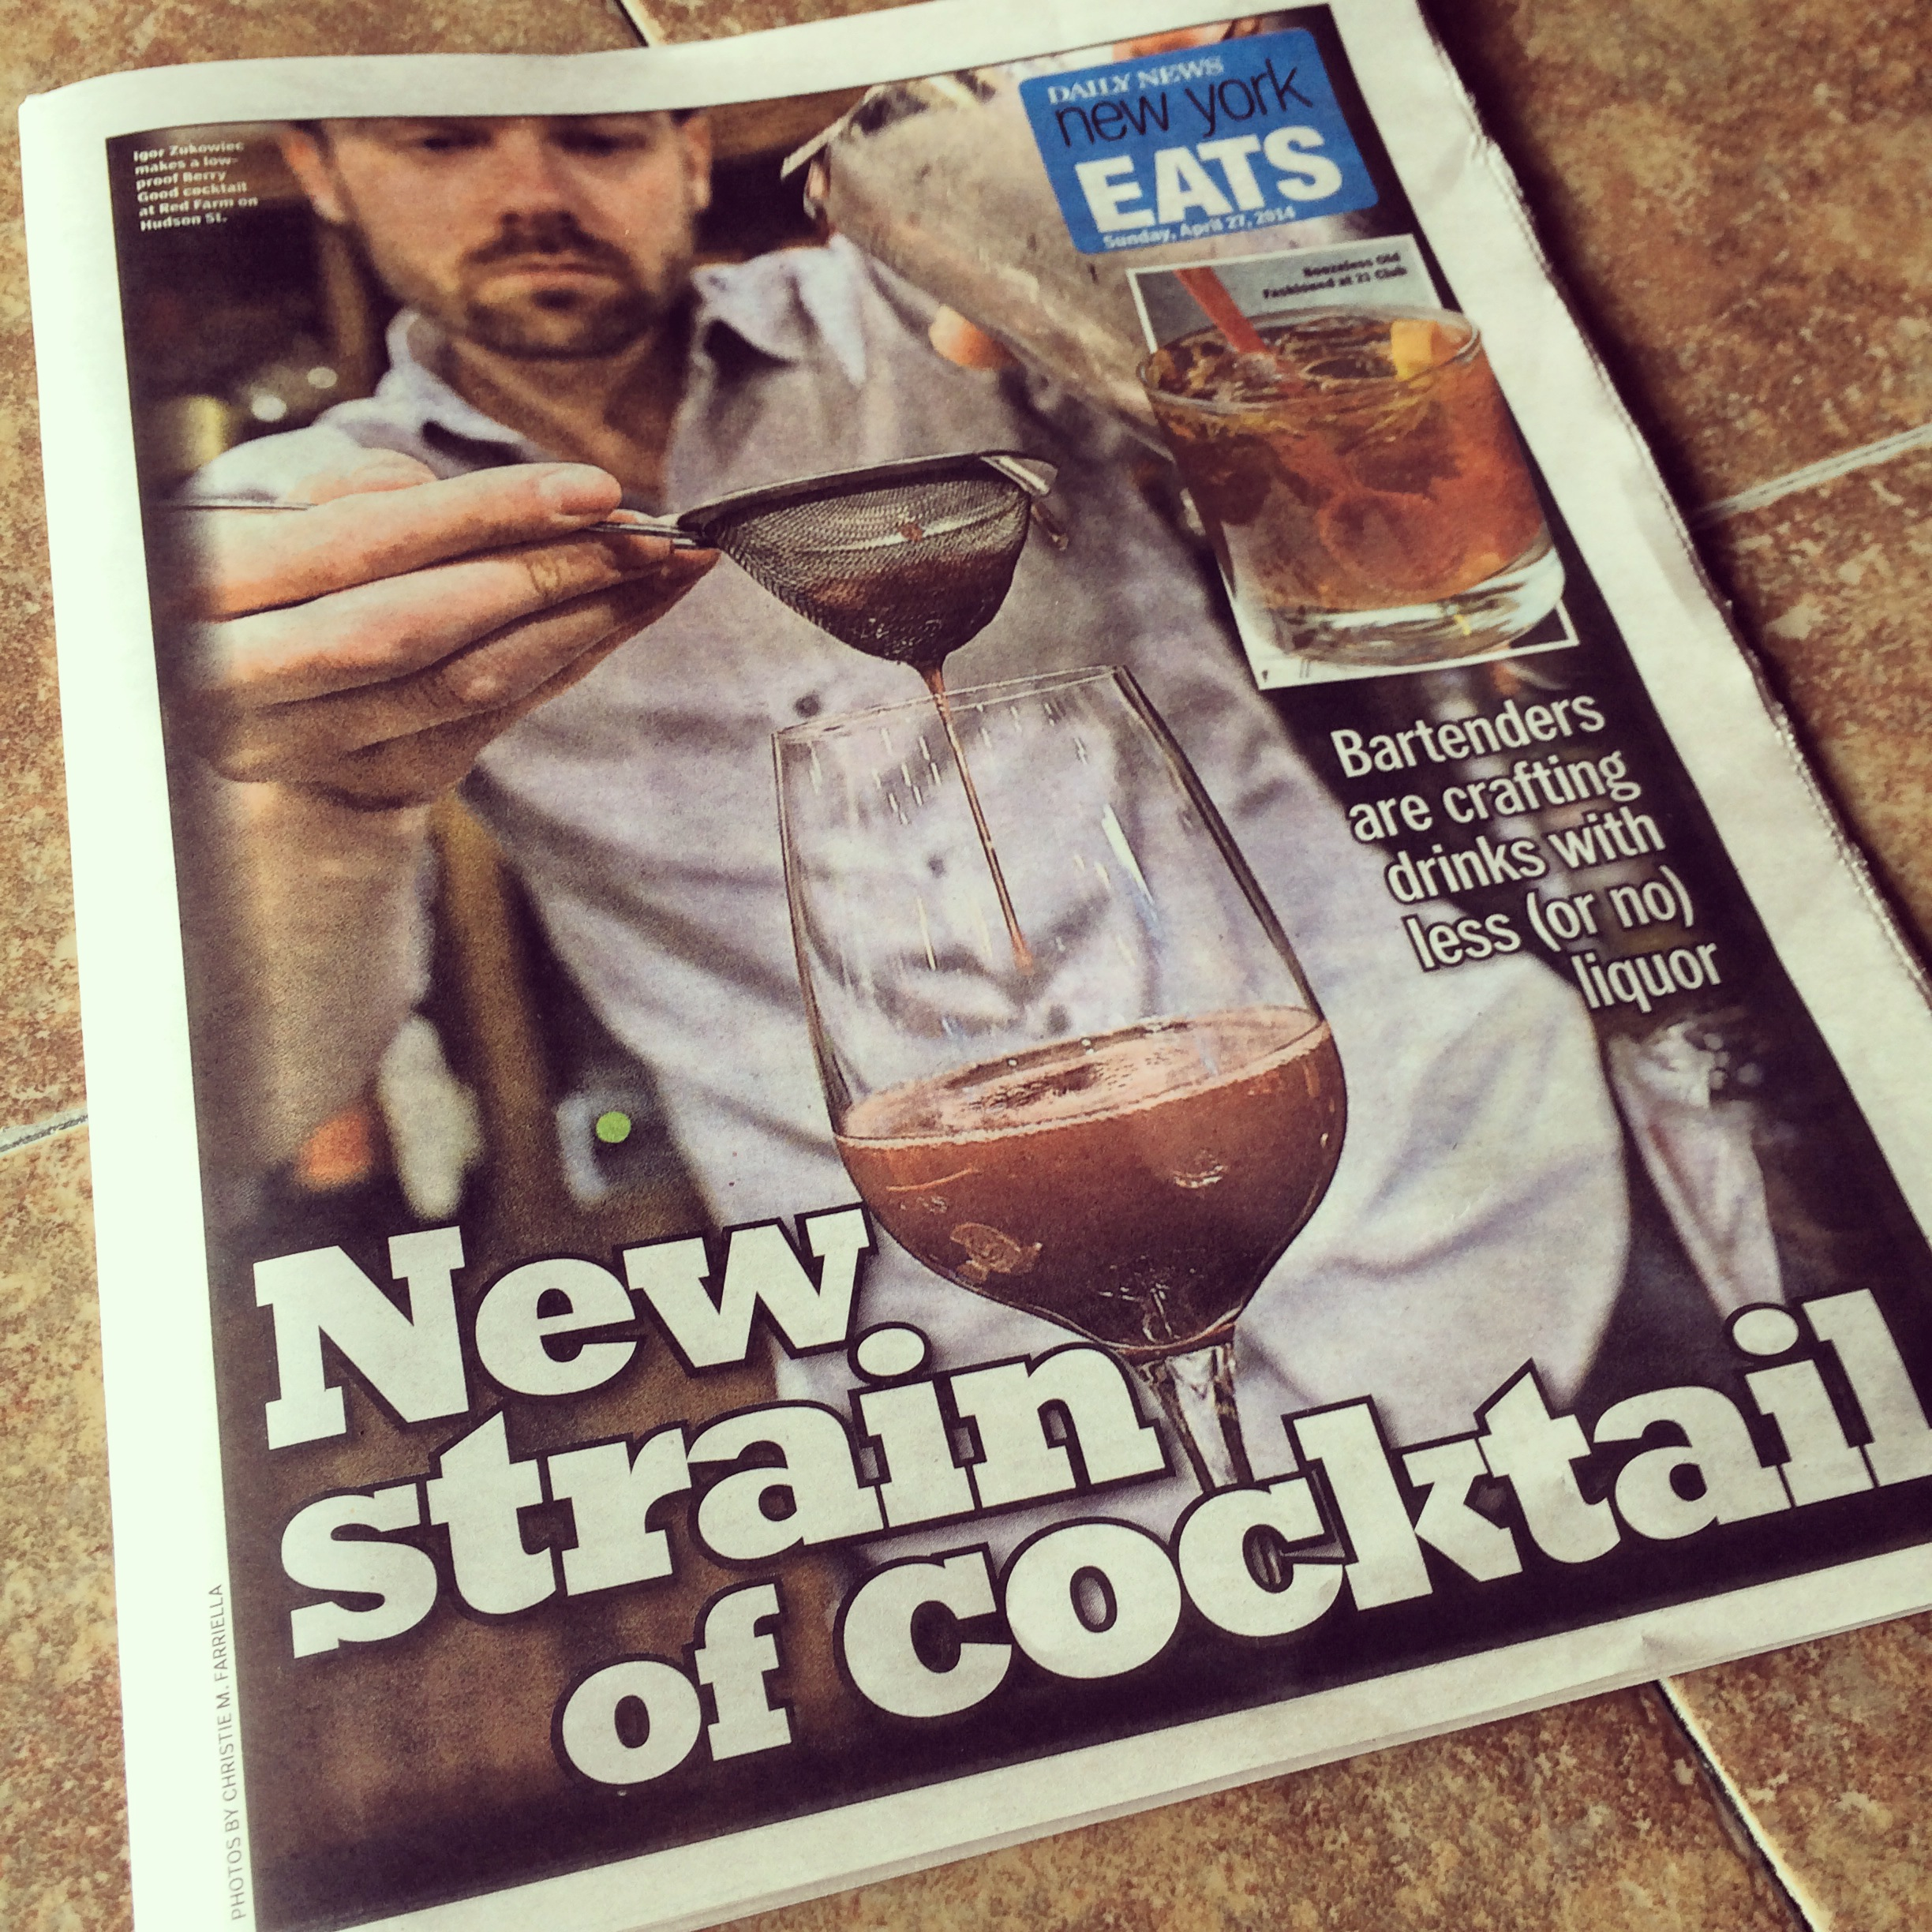 Igor on the cover of the Daily News Eats.